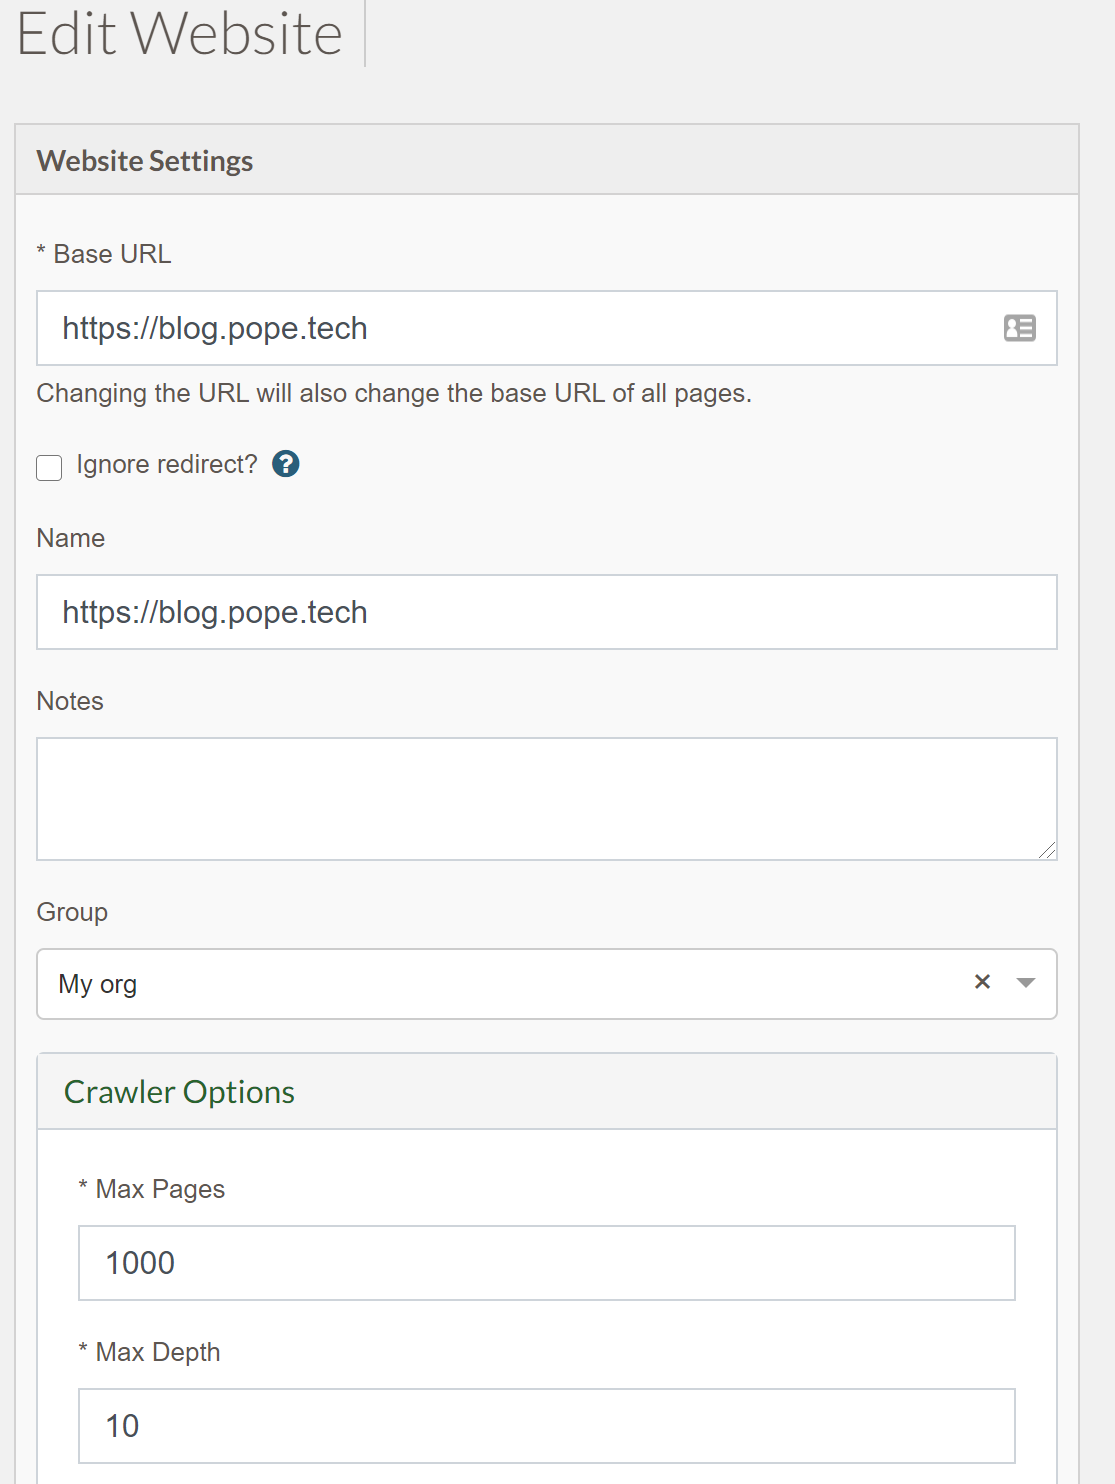 screenshot of editing a website with max pages set at 1,000